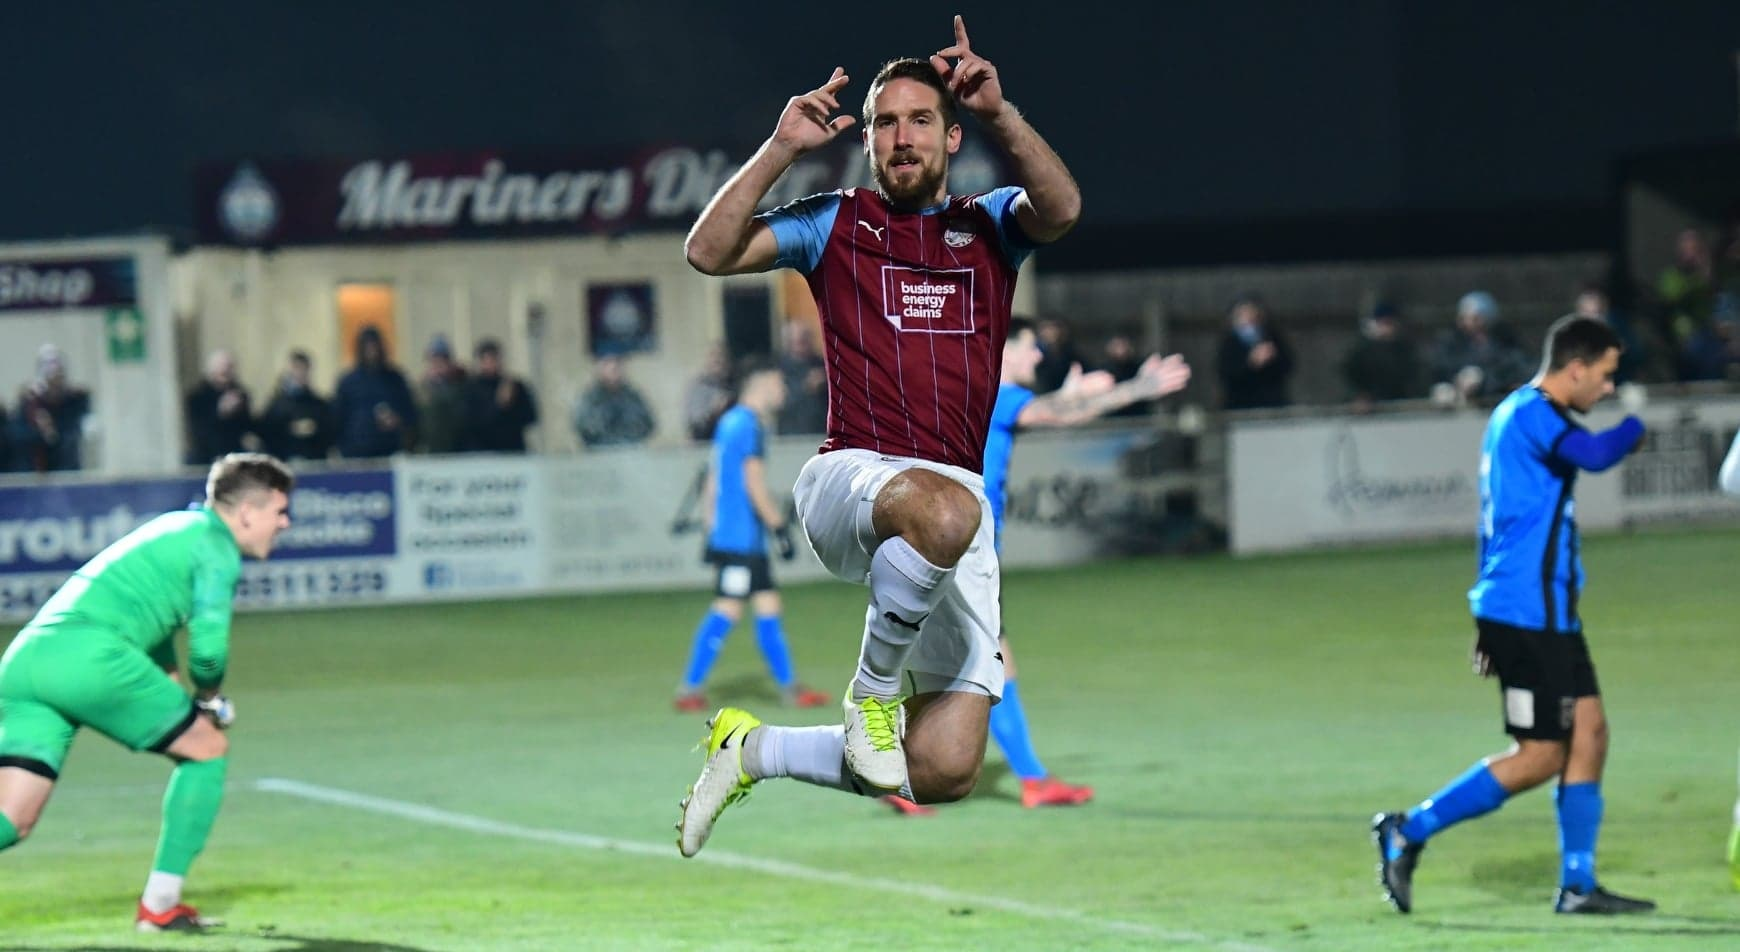 South Shields 4-0 Stourbridge: Mariners book place in Trophy first round